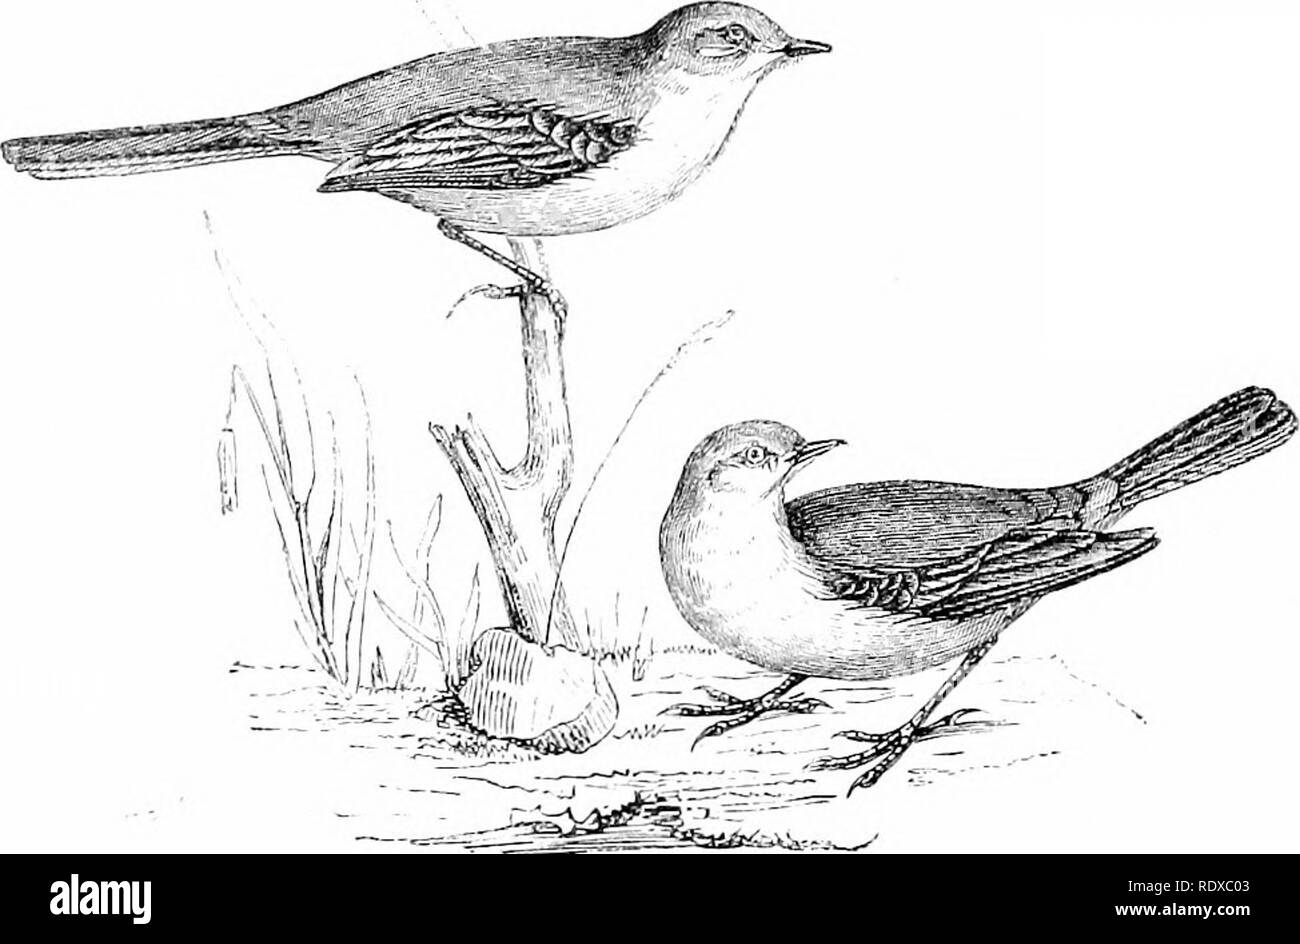 """. Reptiles and birds : a popular account of their various orders : with a description of the habits and economy of the most interesting . Birds; Reptiles. WACITAILS. 0<jl Pipits, and resemble them in manj' of tlieir habits, differing chiefly in the lengthened tail and shorter claws. Both are remarkable for the vibratory motion of their body while stand- ing or walking, which their long tail renders a conspicuous feature. The Pied """"Wagtail {MotaciUa cinerea, Gmelin), Fig. 253, which is generally distributed in England, seems to have been con- founded with the White Wagtail {'Mot.adlla a - Stock Image"""